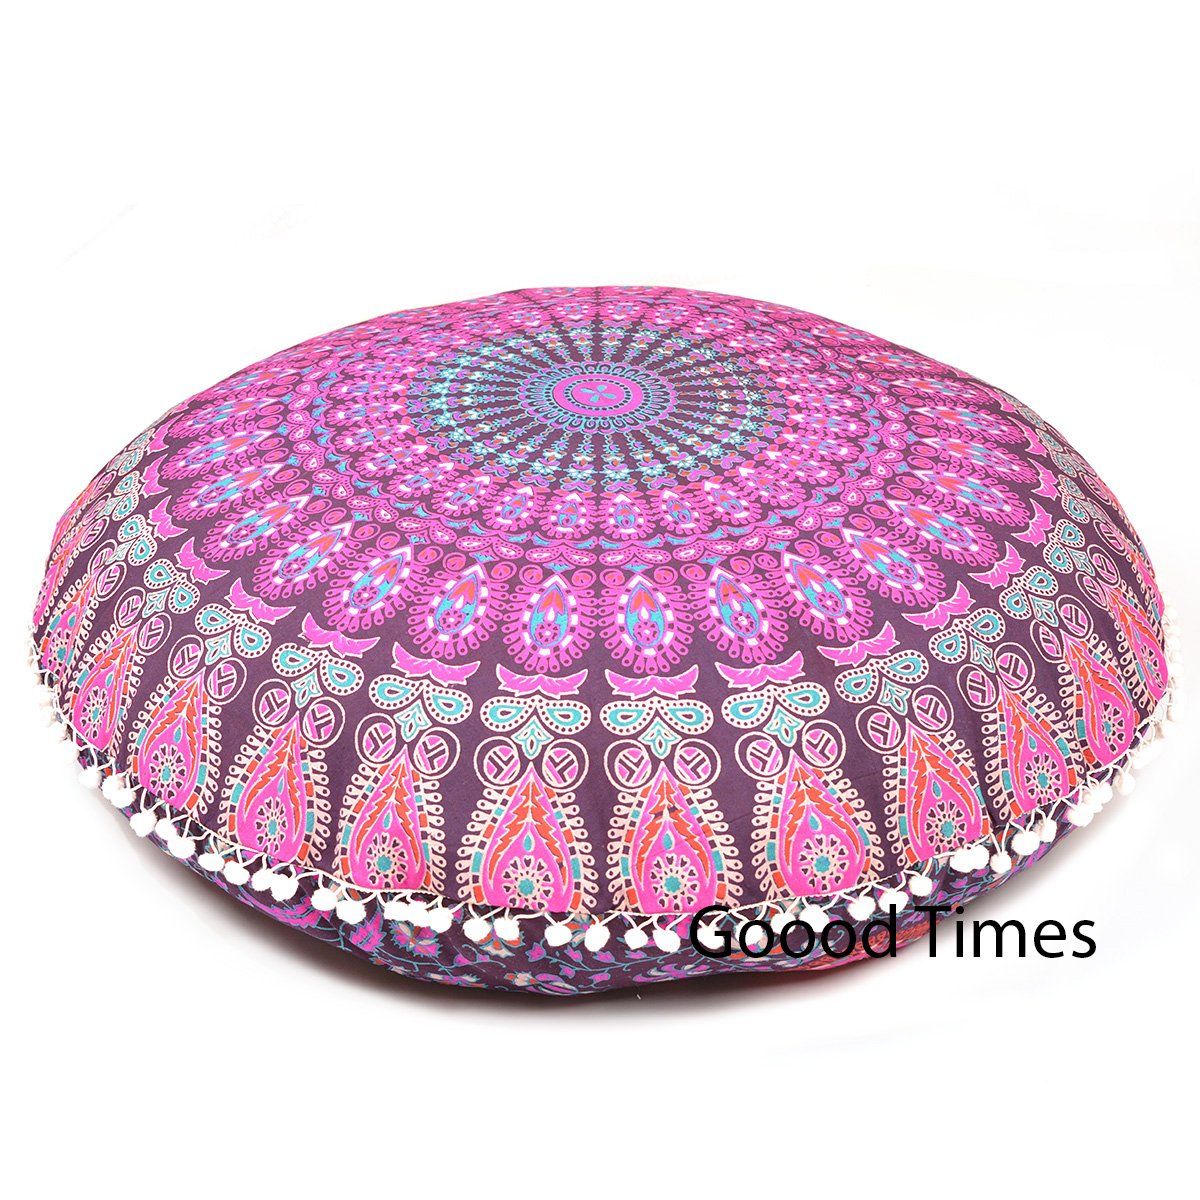 Goood Times Pink Throw Decorative Floor Pillow Cushion Cover Mandala - 32